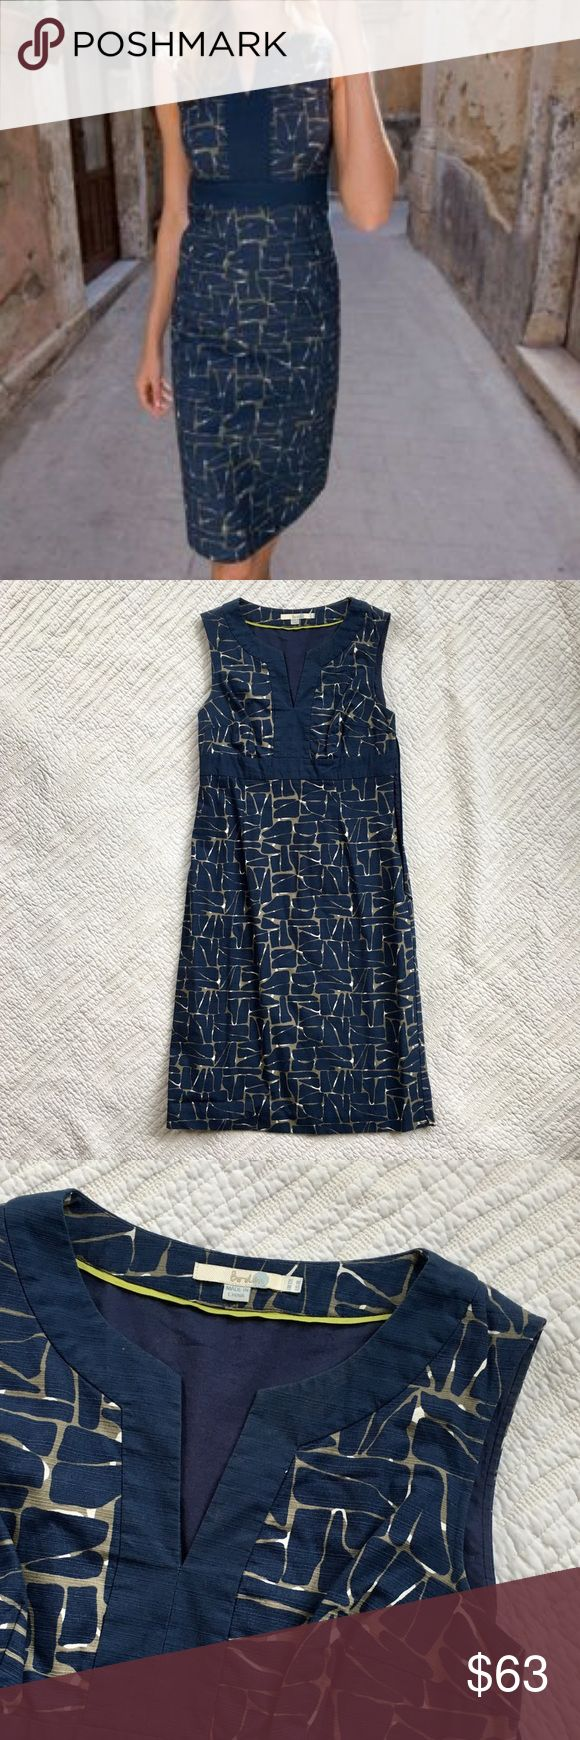 "Boden Notch VNeck Textured Cotton Navy Shift Dress EUC shift dress from Boden in 100% cotton. Beautiful textured fabric featuring a geometric navy and slate pattern with white accents. Tank dress with notched V-Neck. Fully lined. Size 8L. 40"" long. 16"" waist flat. 18"" bust flat. Boden Dresses"